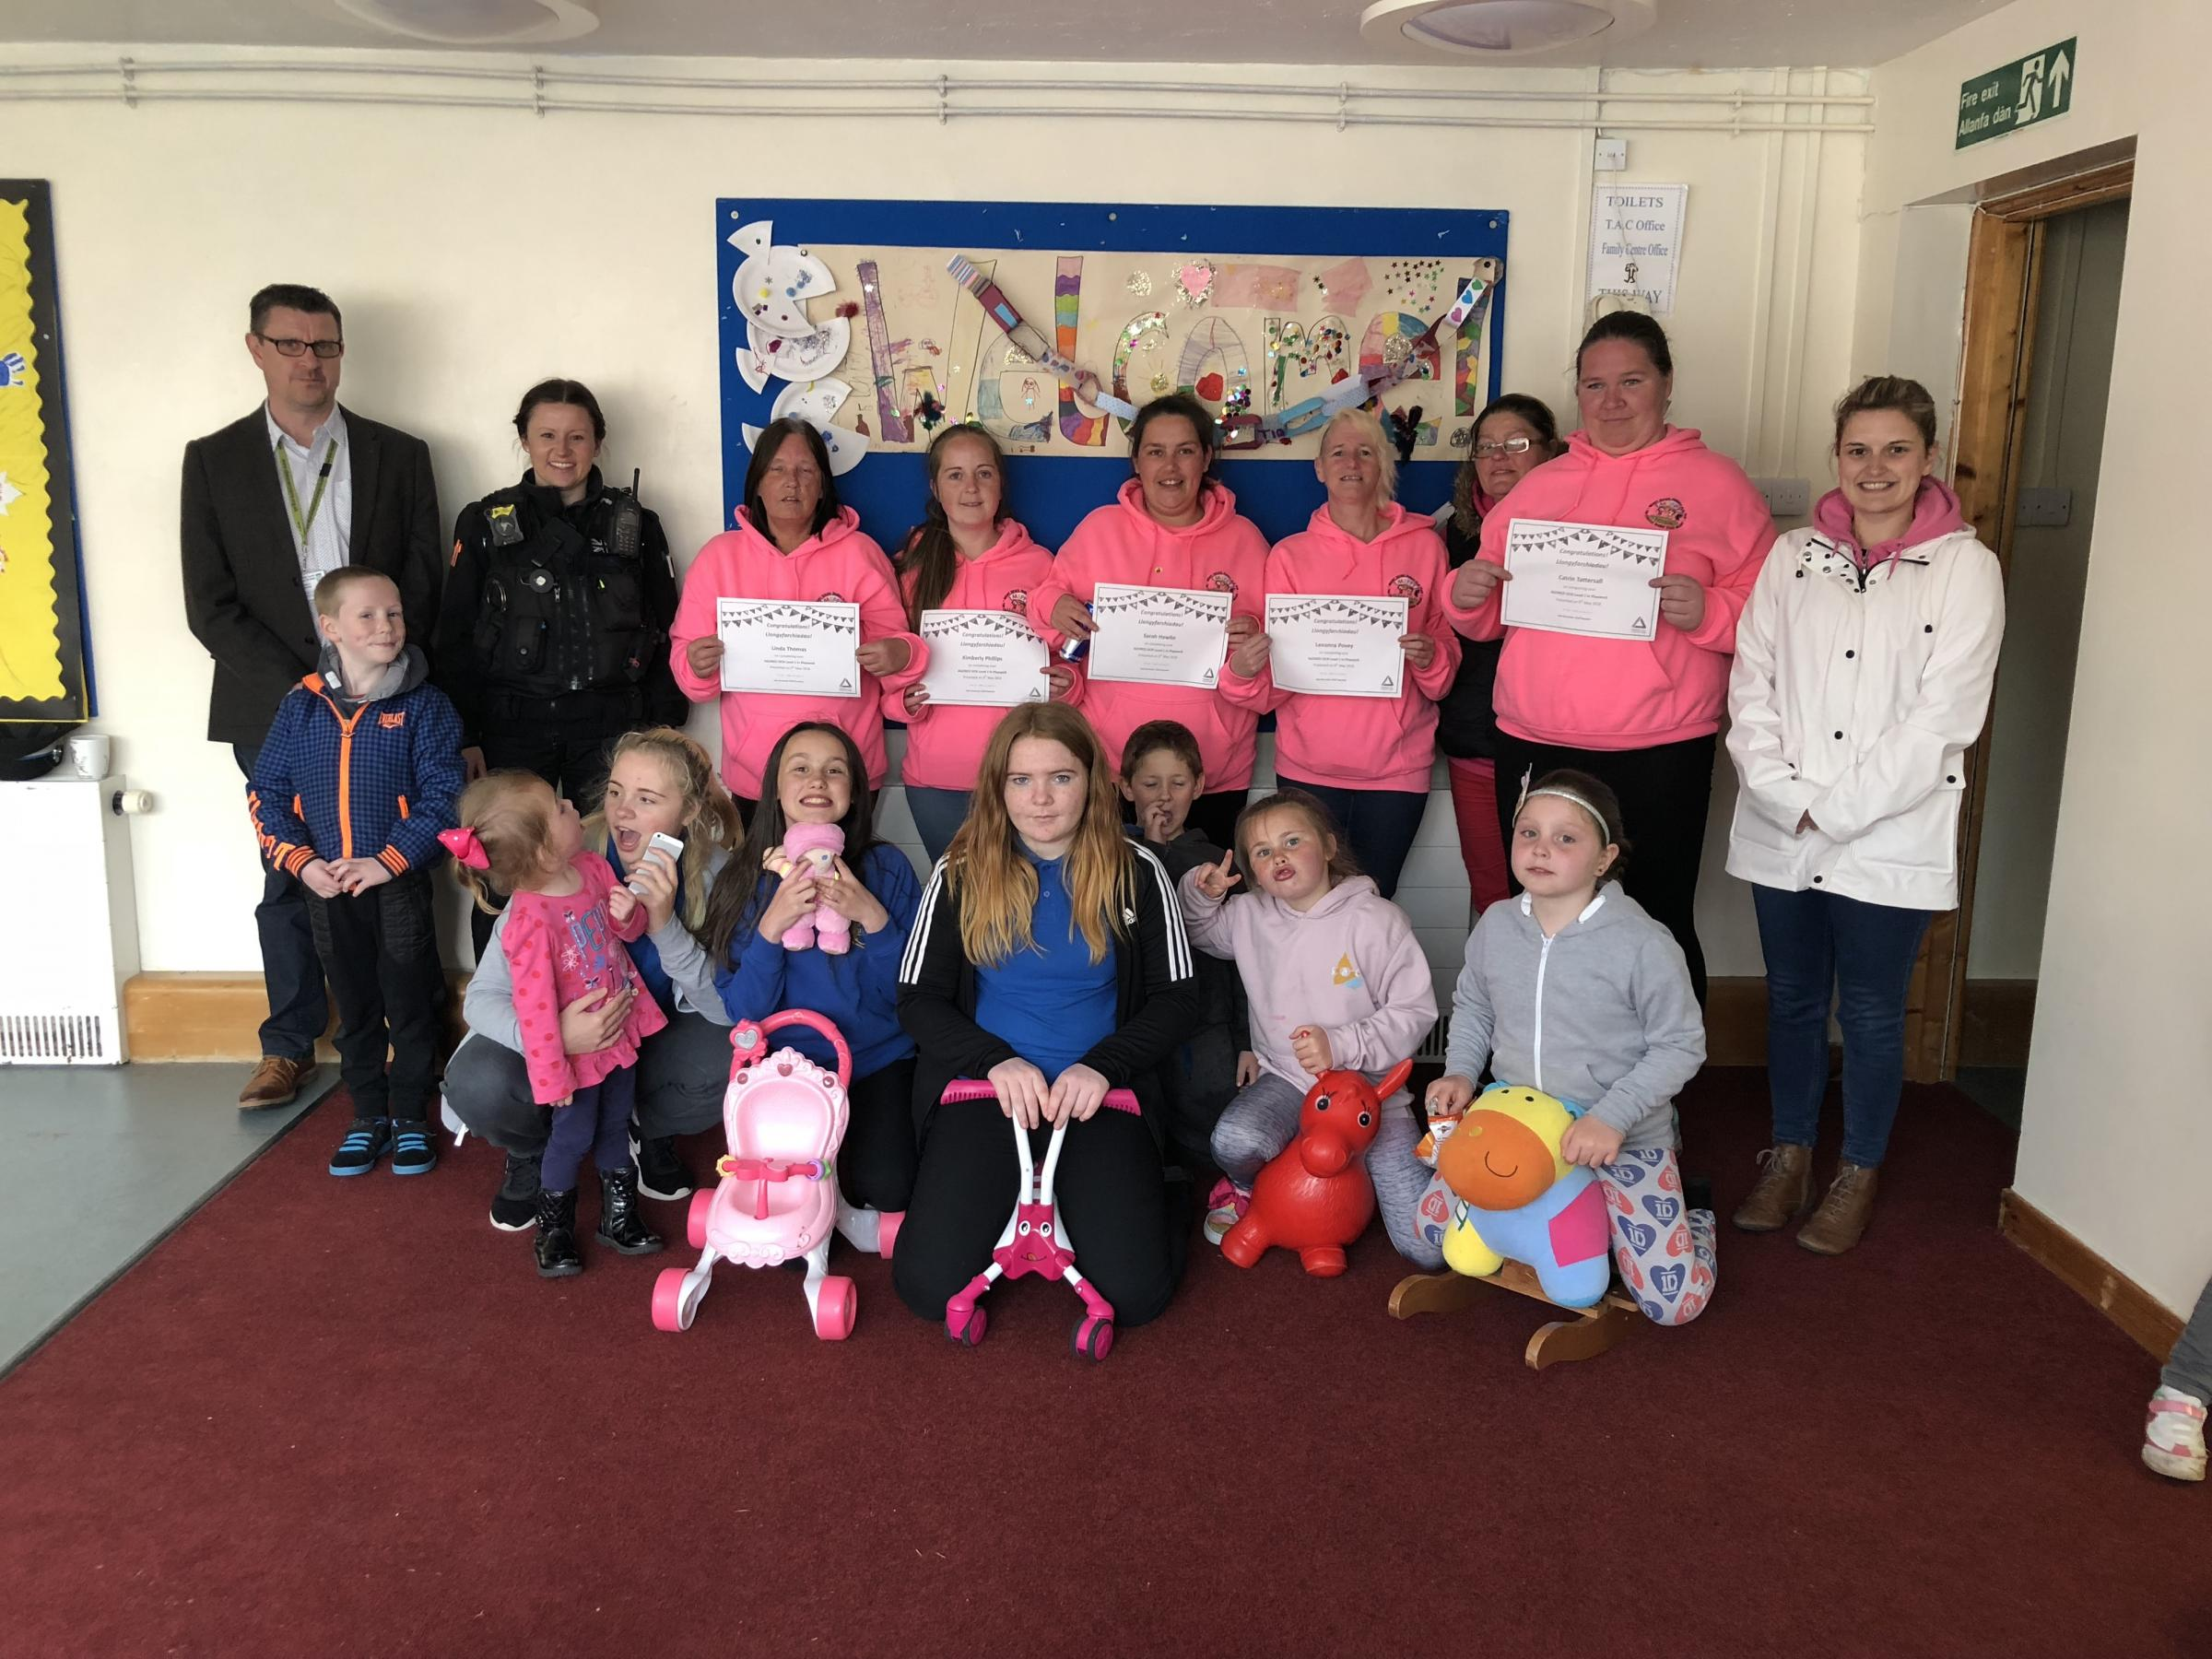 Pictured with some of the young people benefitting from the project are (standing, left to right) Damian Golden; PCSO Stacey Thomas; Parent Play Team members Linda, Kimberly, Sarah, Leeanna and, Catrin and Nia Davies, Council Housing Customer Liaison Offi